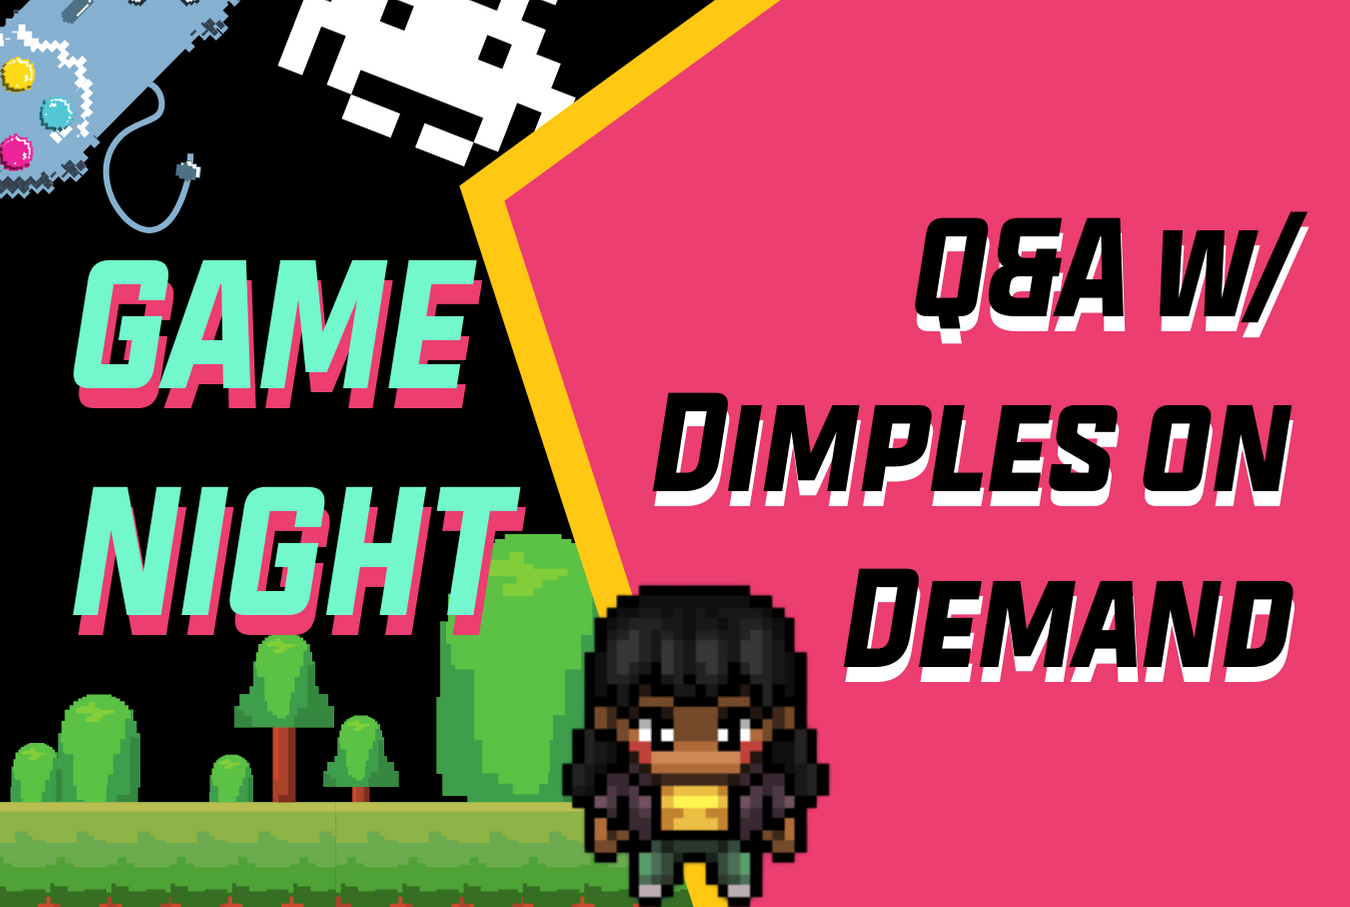 Dimples on Demand Q&A + Game Night: June 1st